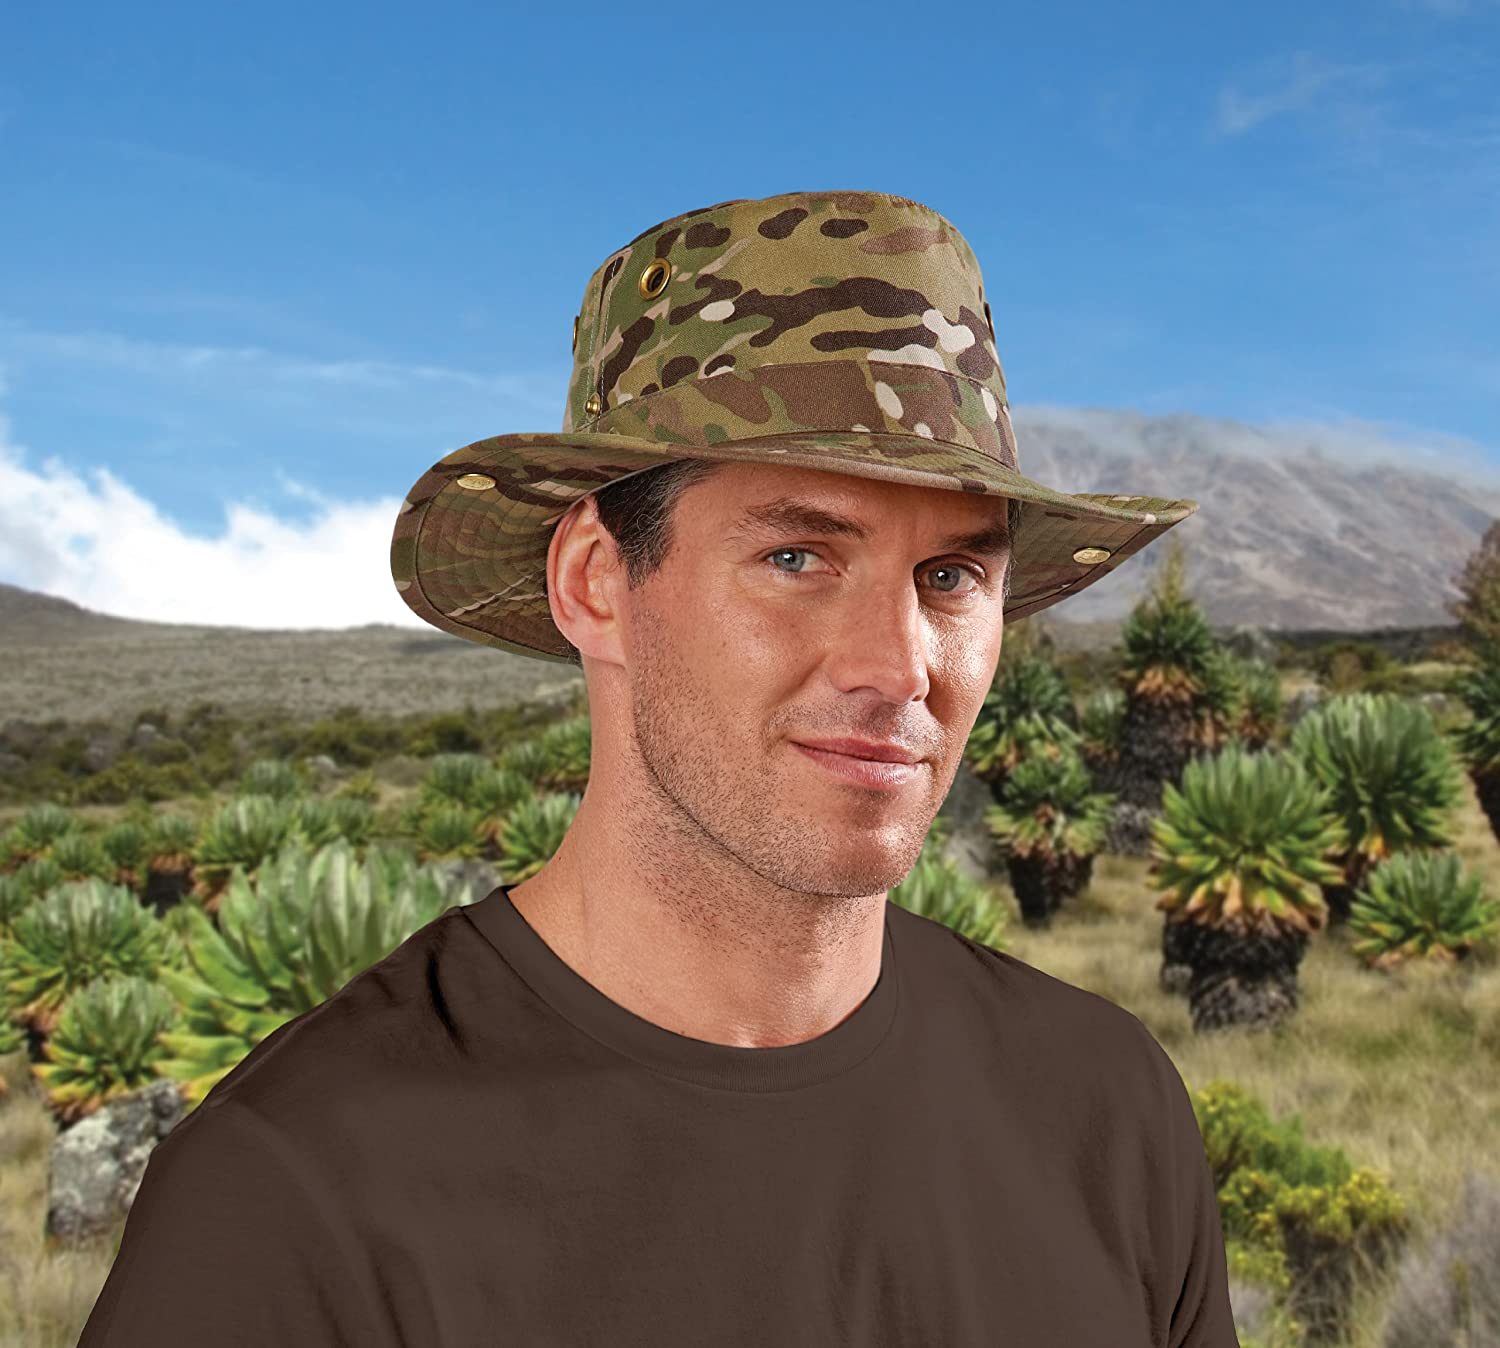 Tilley Men s LT3C Snap-Up Camouflage Hat-7.125-Camo  Amazon.ca  Clothing    Accessories f49a9a36317